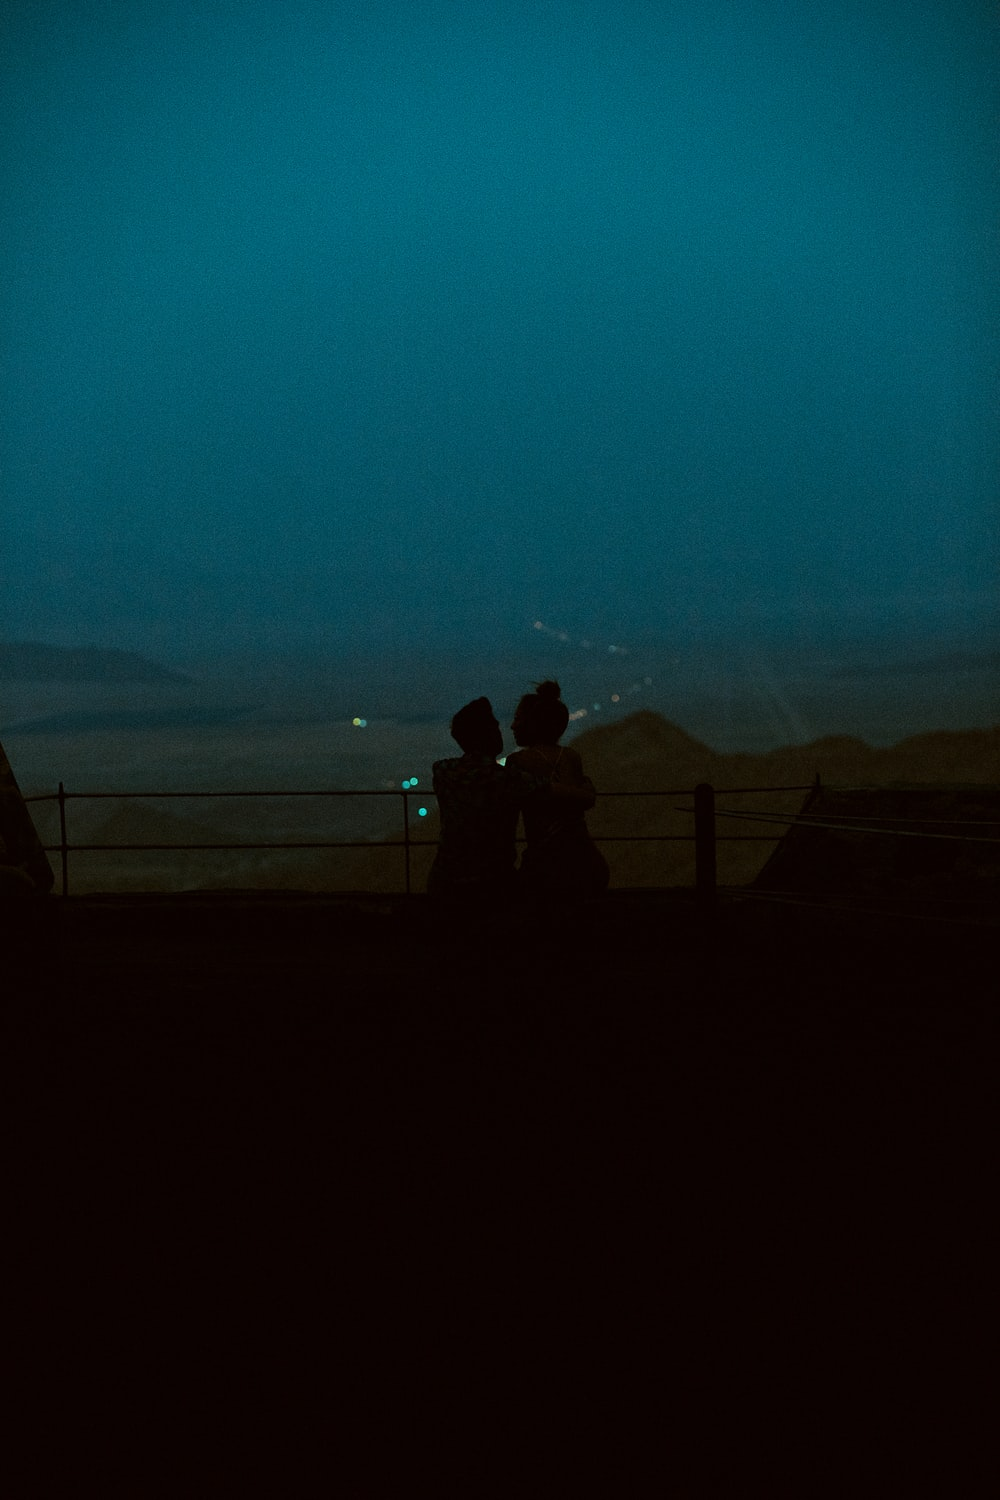 silhouette of 2 person standing on the fence during night time